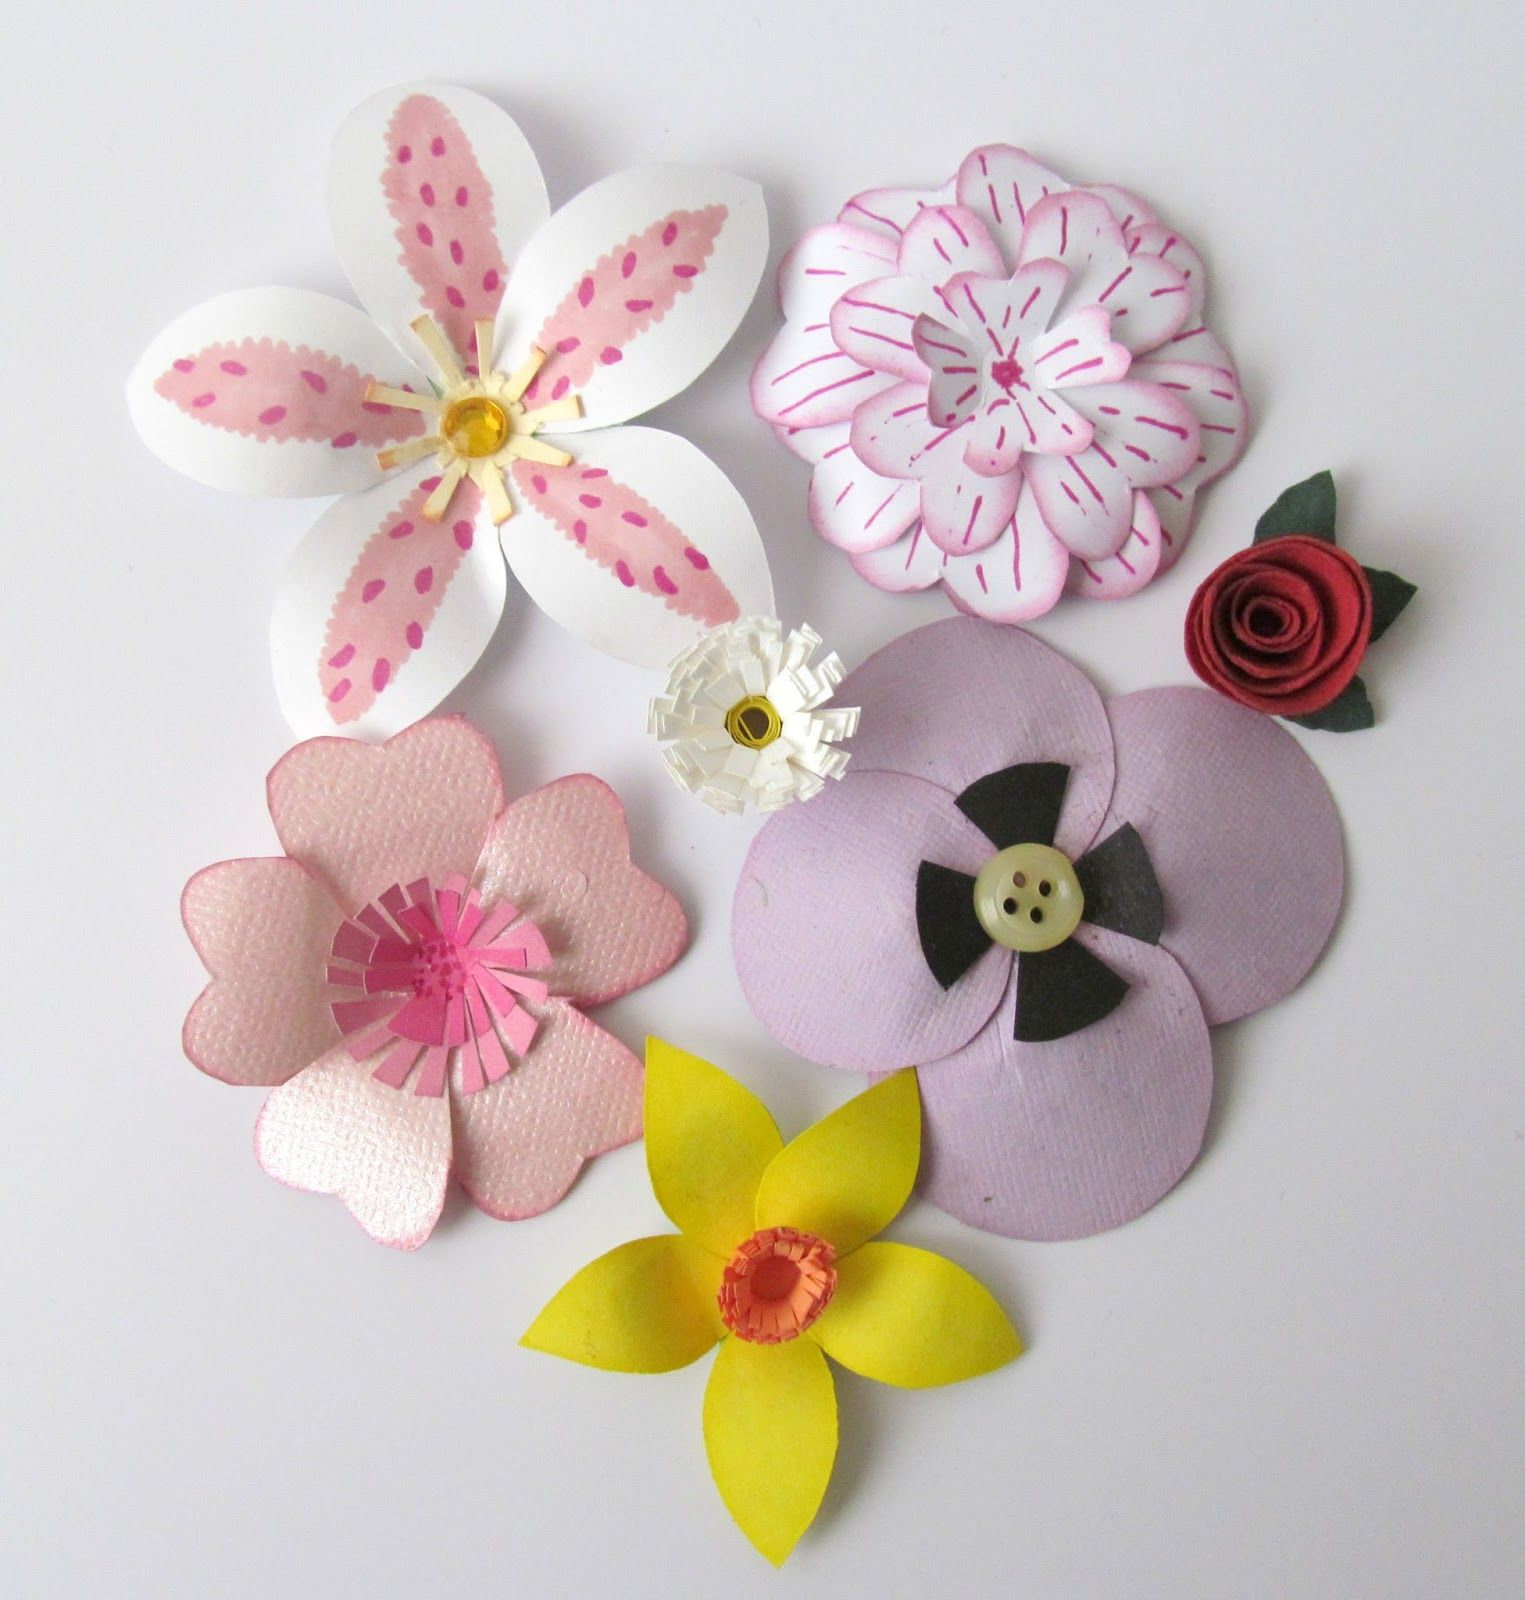 Handmade paper flowers only weddings pinterest handmade paper handmade paper flowers mightylinksfo